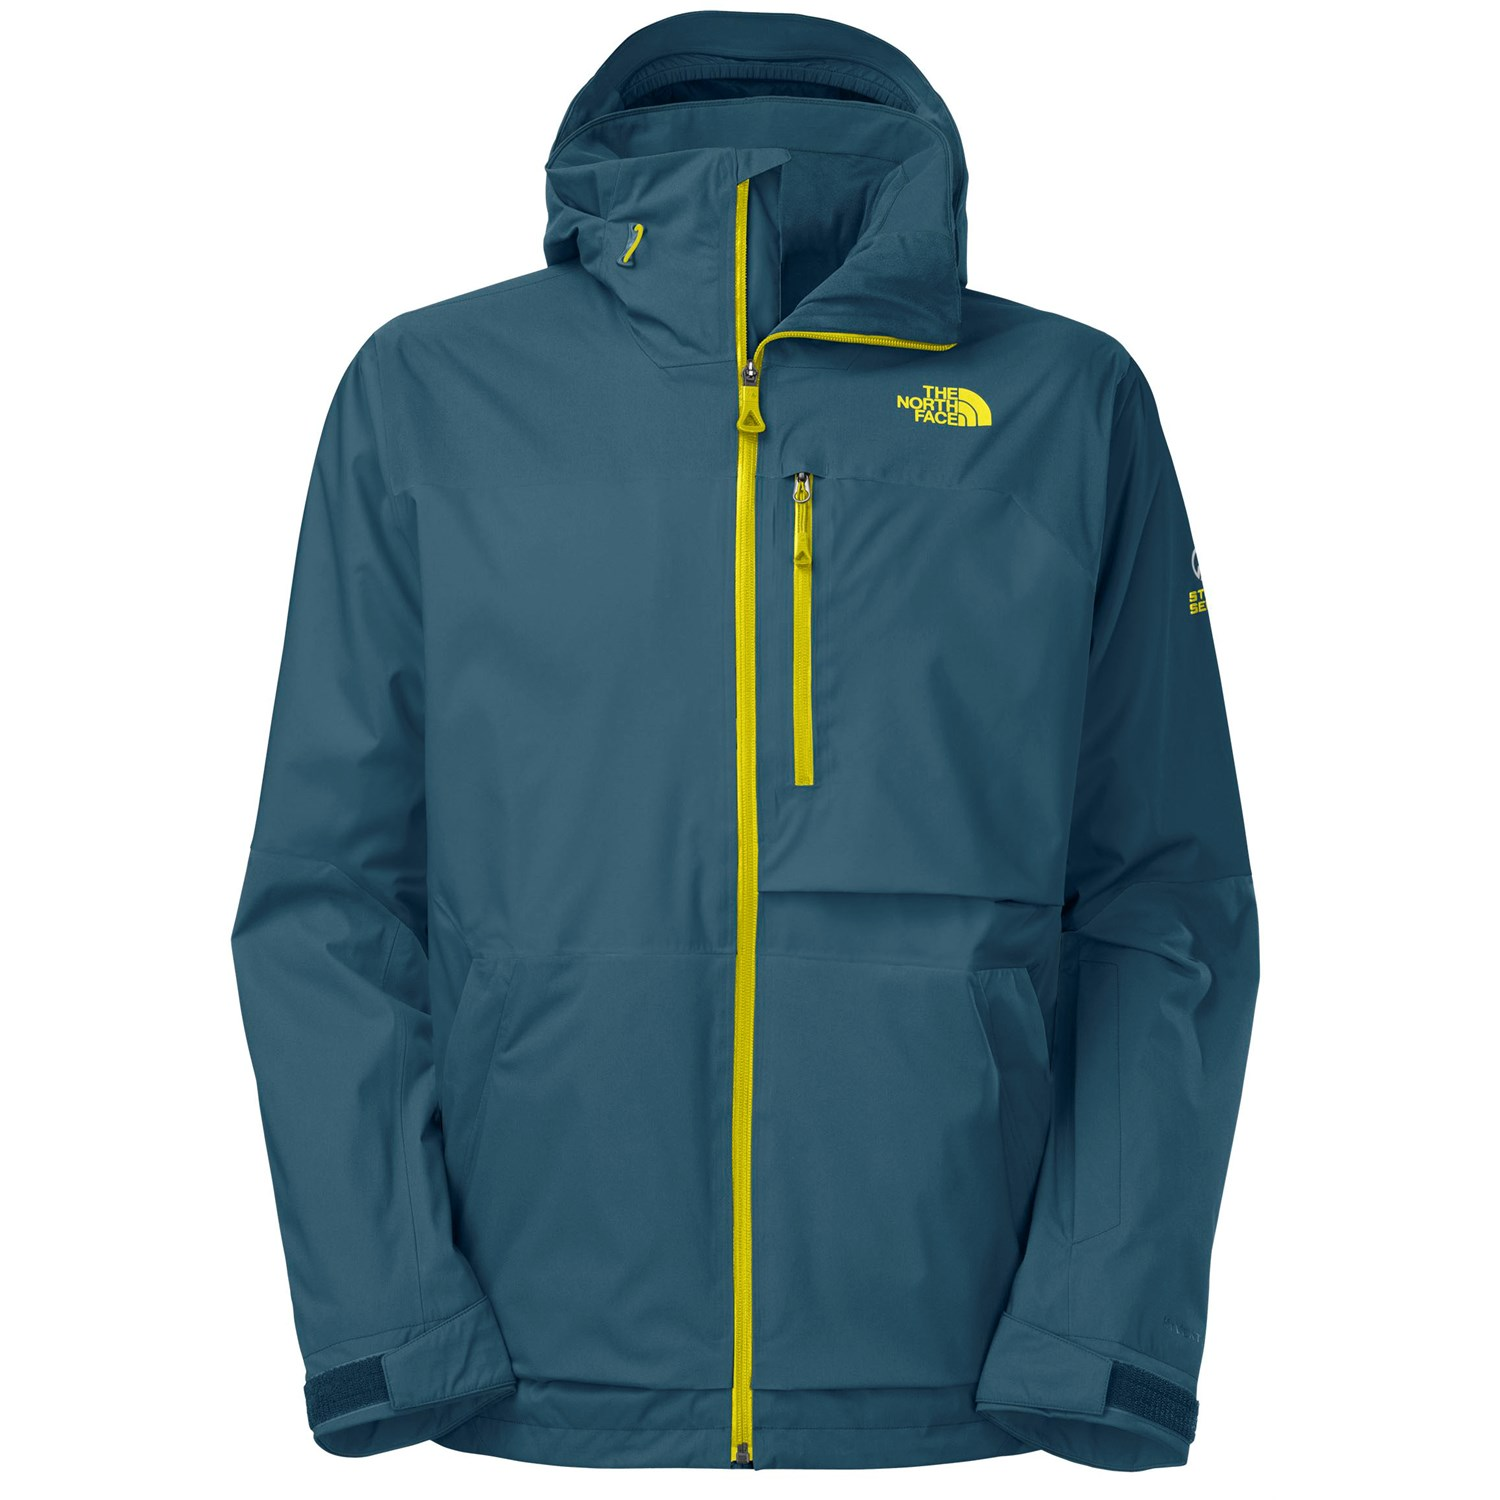 The North Face Sickline Jacket Evo